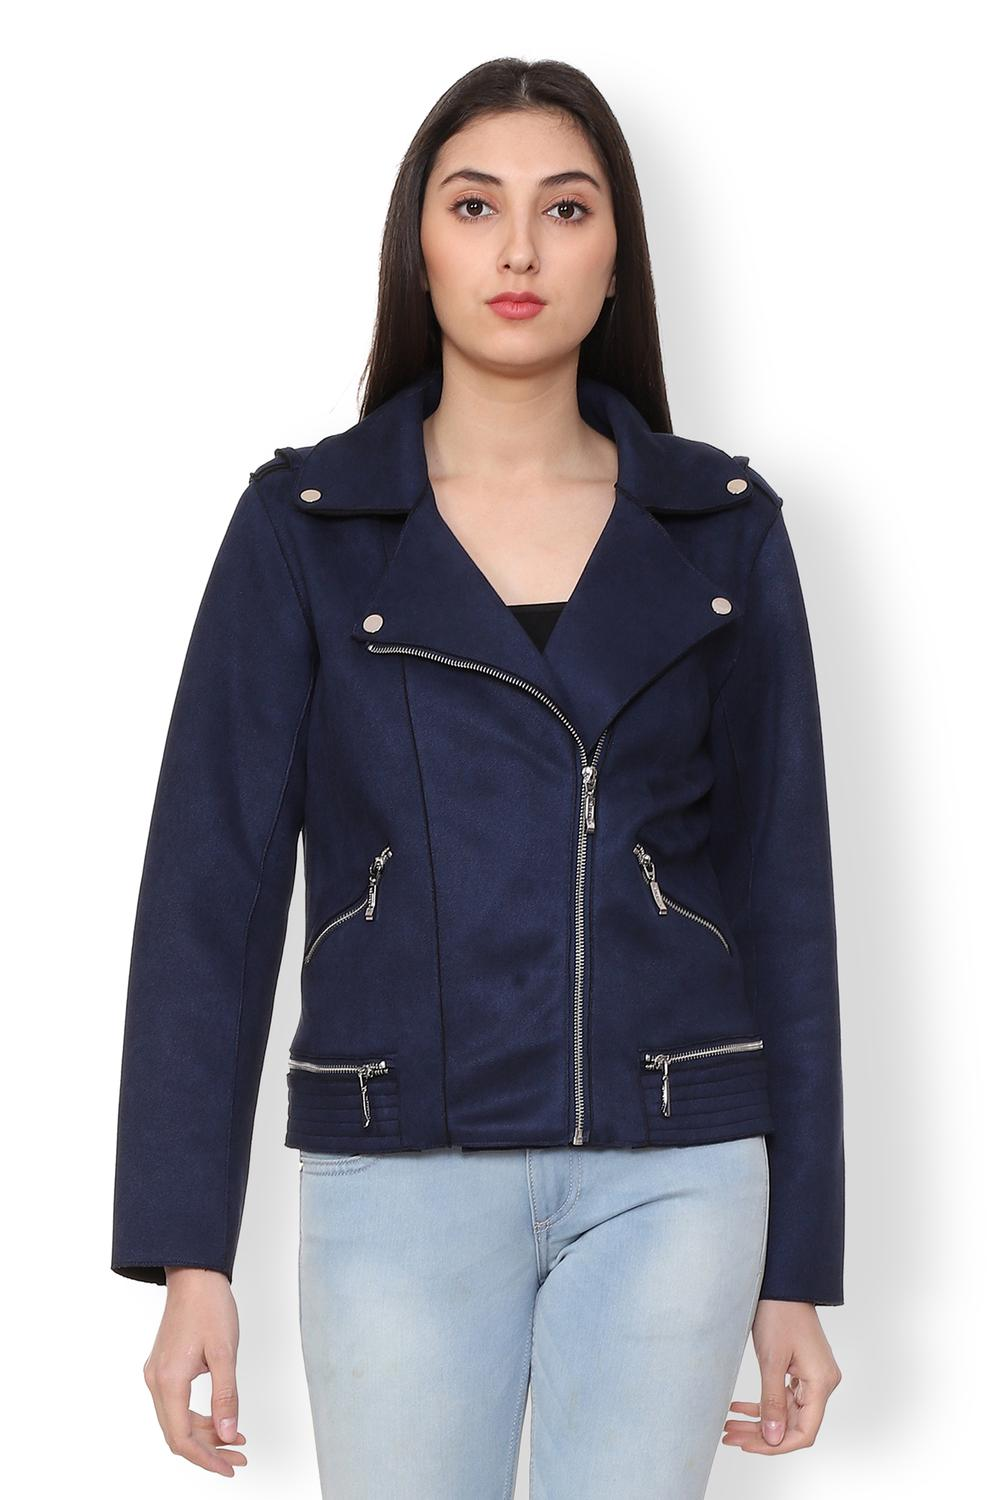 0d462acd69e Allen Solly Jackets & Overcoats, Allen Solly Navy Jacket for Women at  Allensolly.com